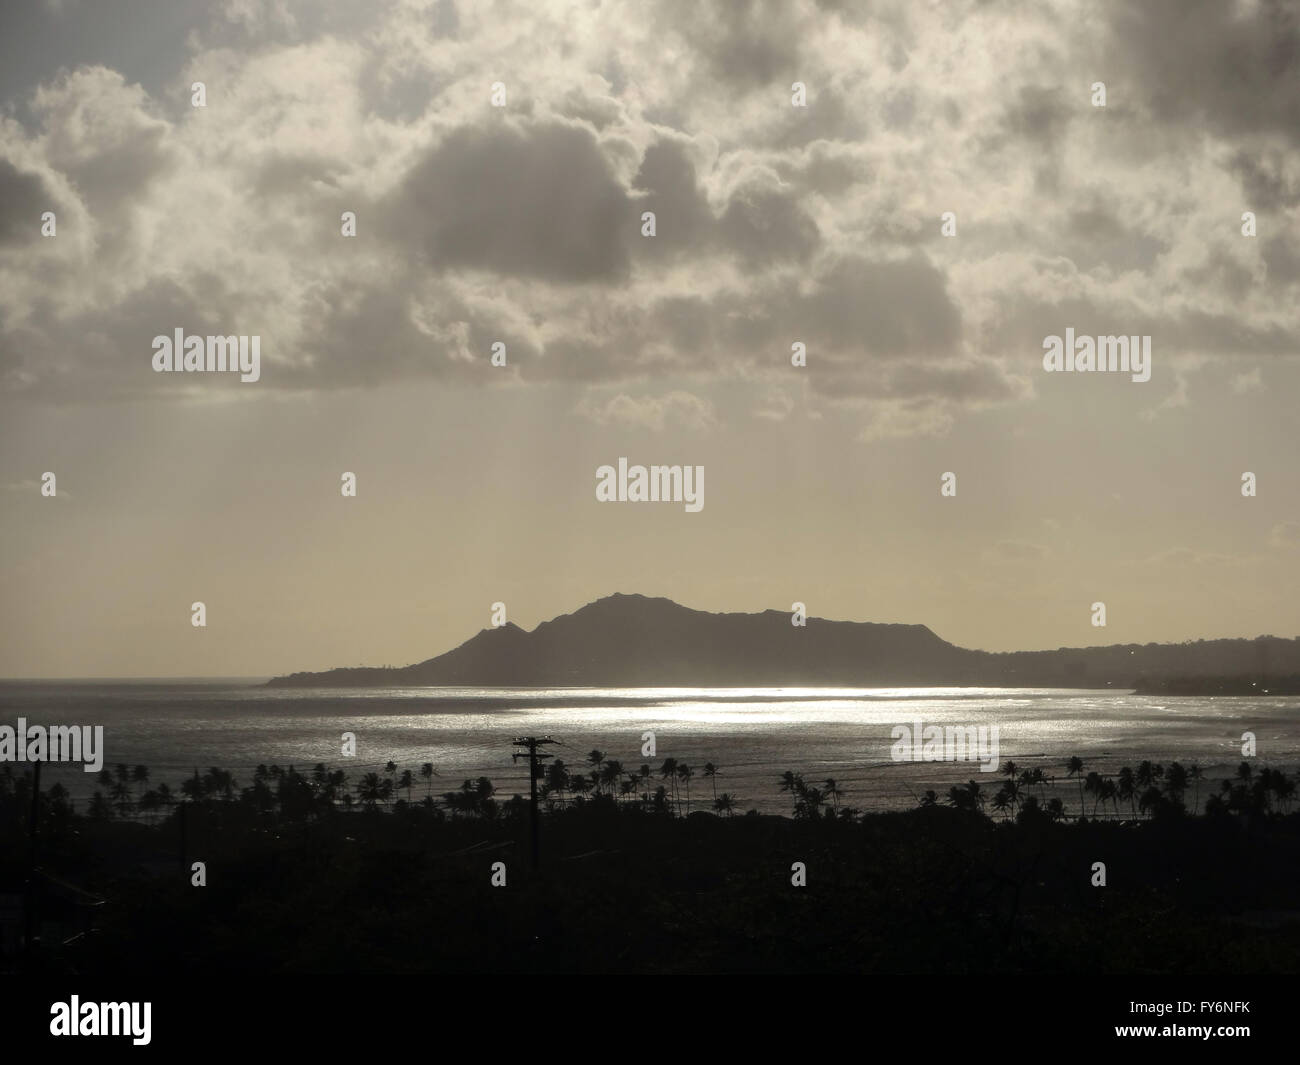 Light Shines through the clouds on Diamondhead at Dusk with Hawaii Kai in the foreground on Oahu, Hawaii. - Stock Image